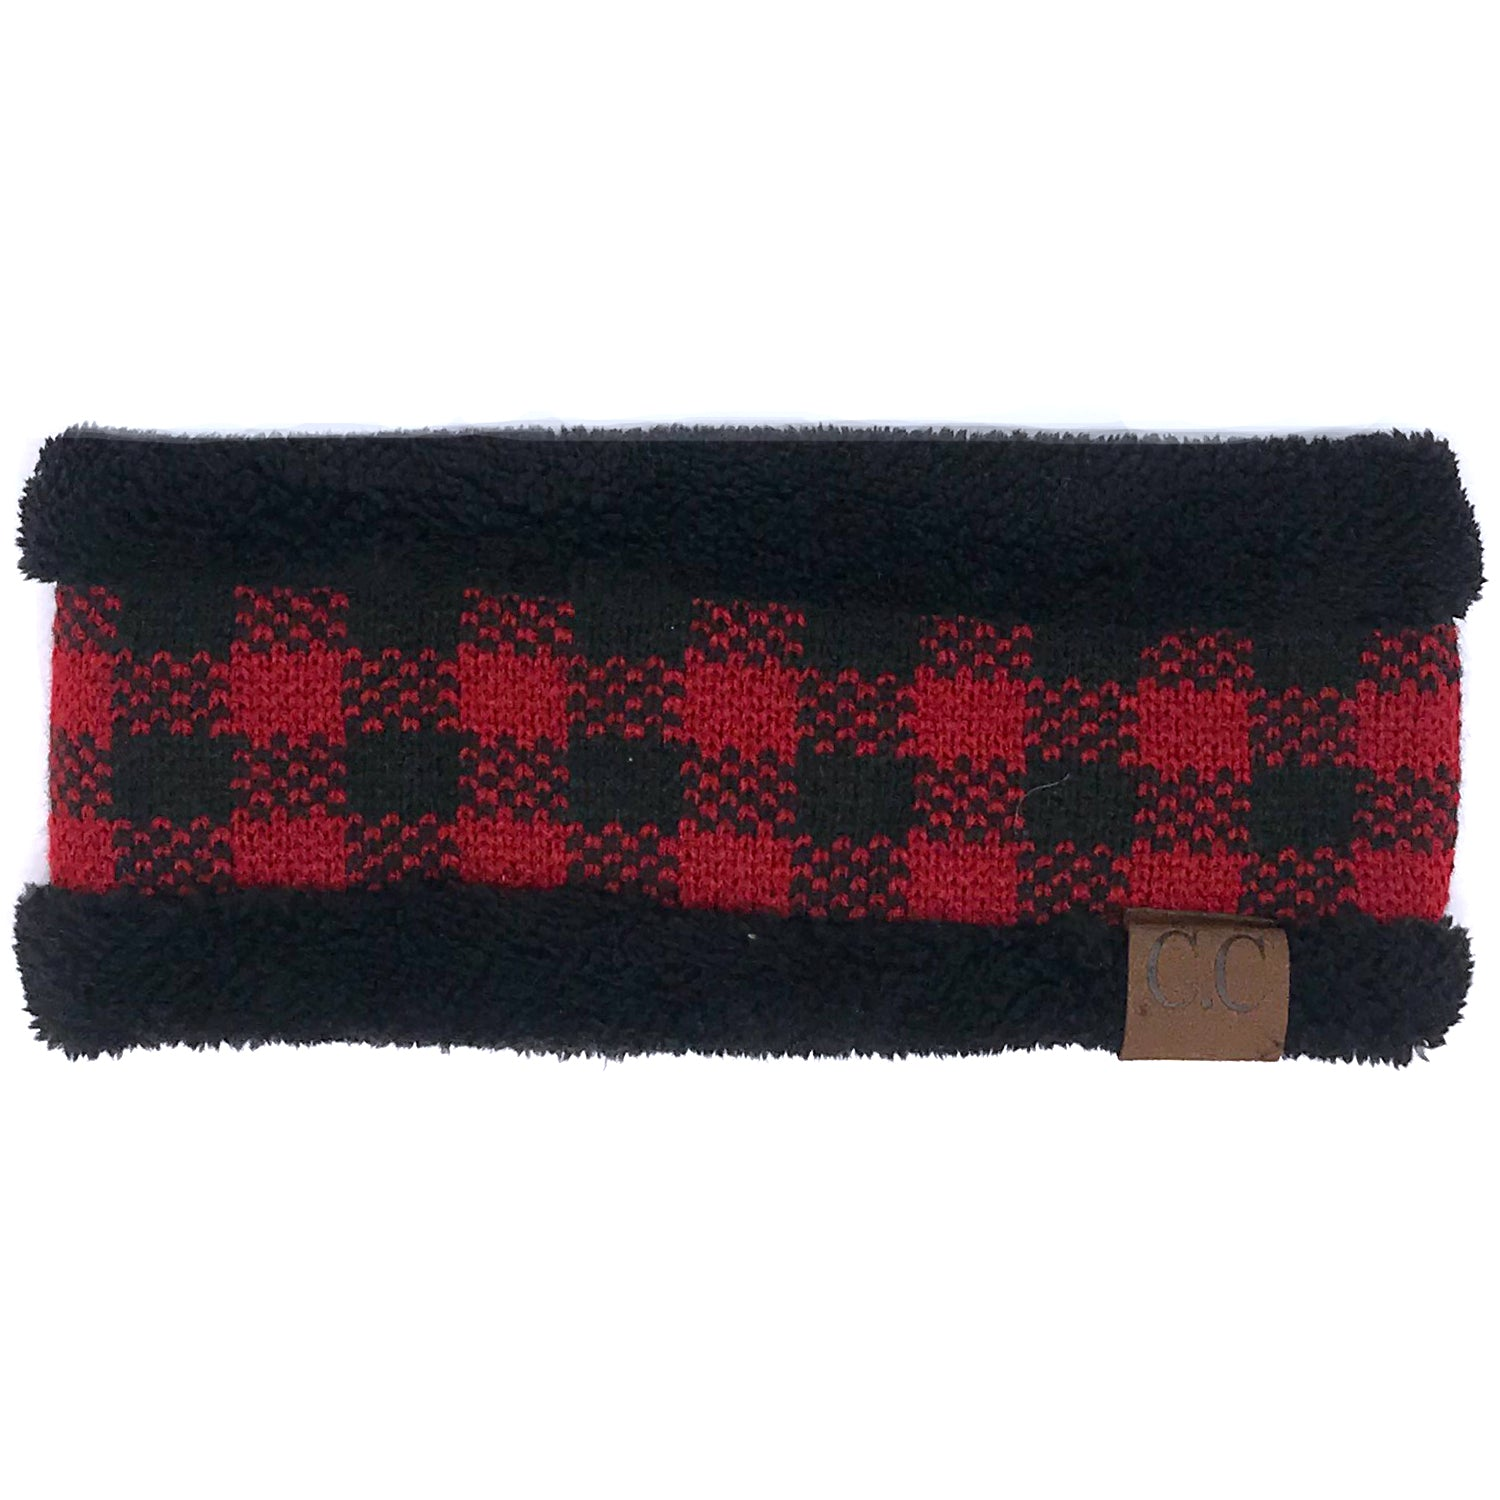 HW-17 BUFFALO PLAID BLACK RED/BLACK